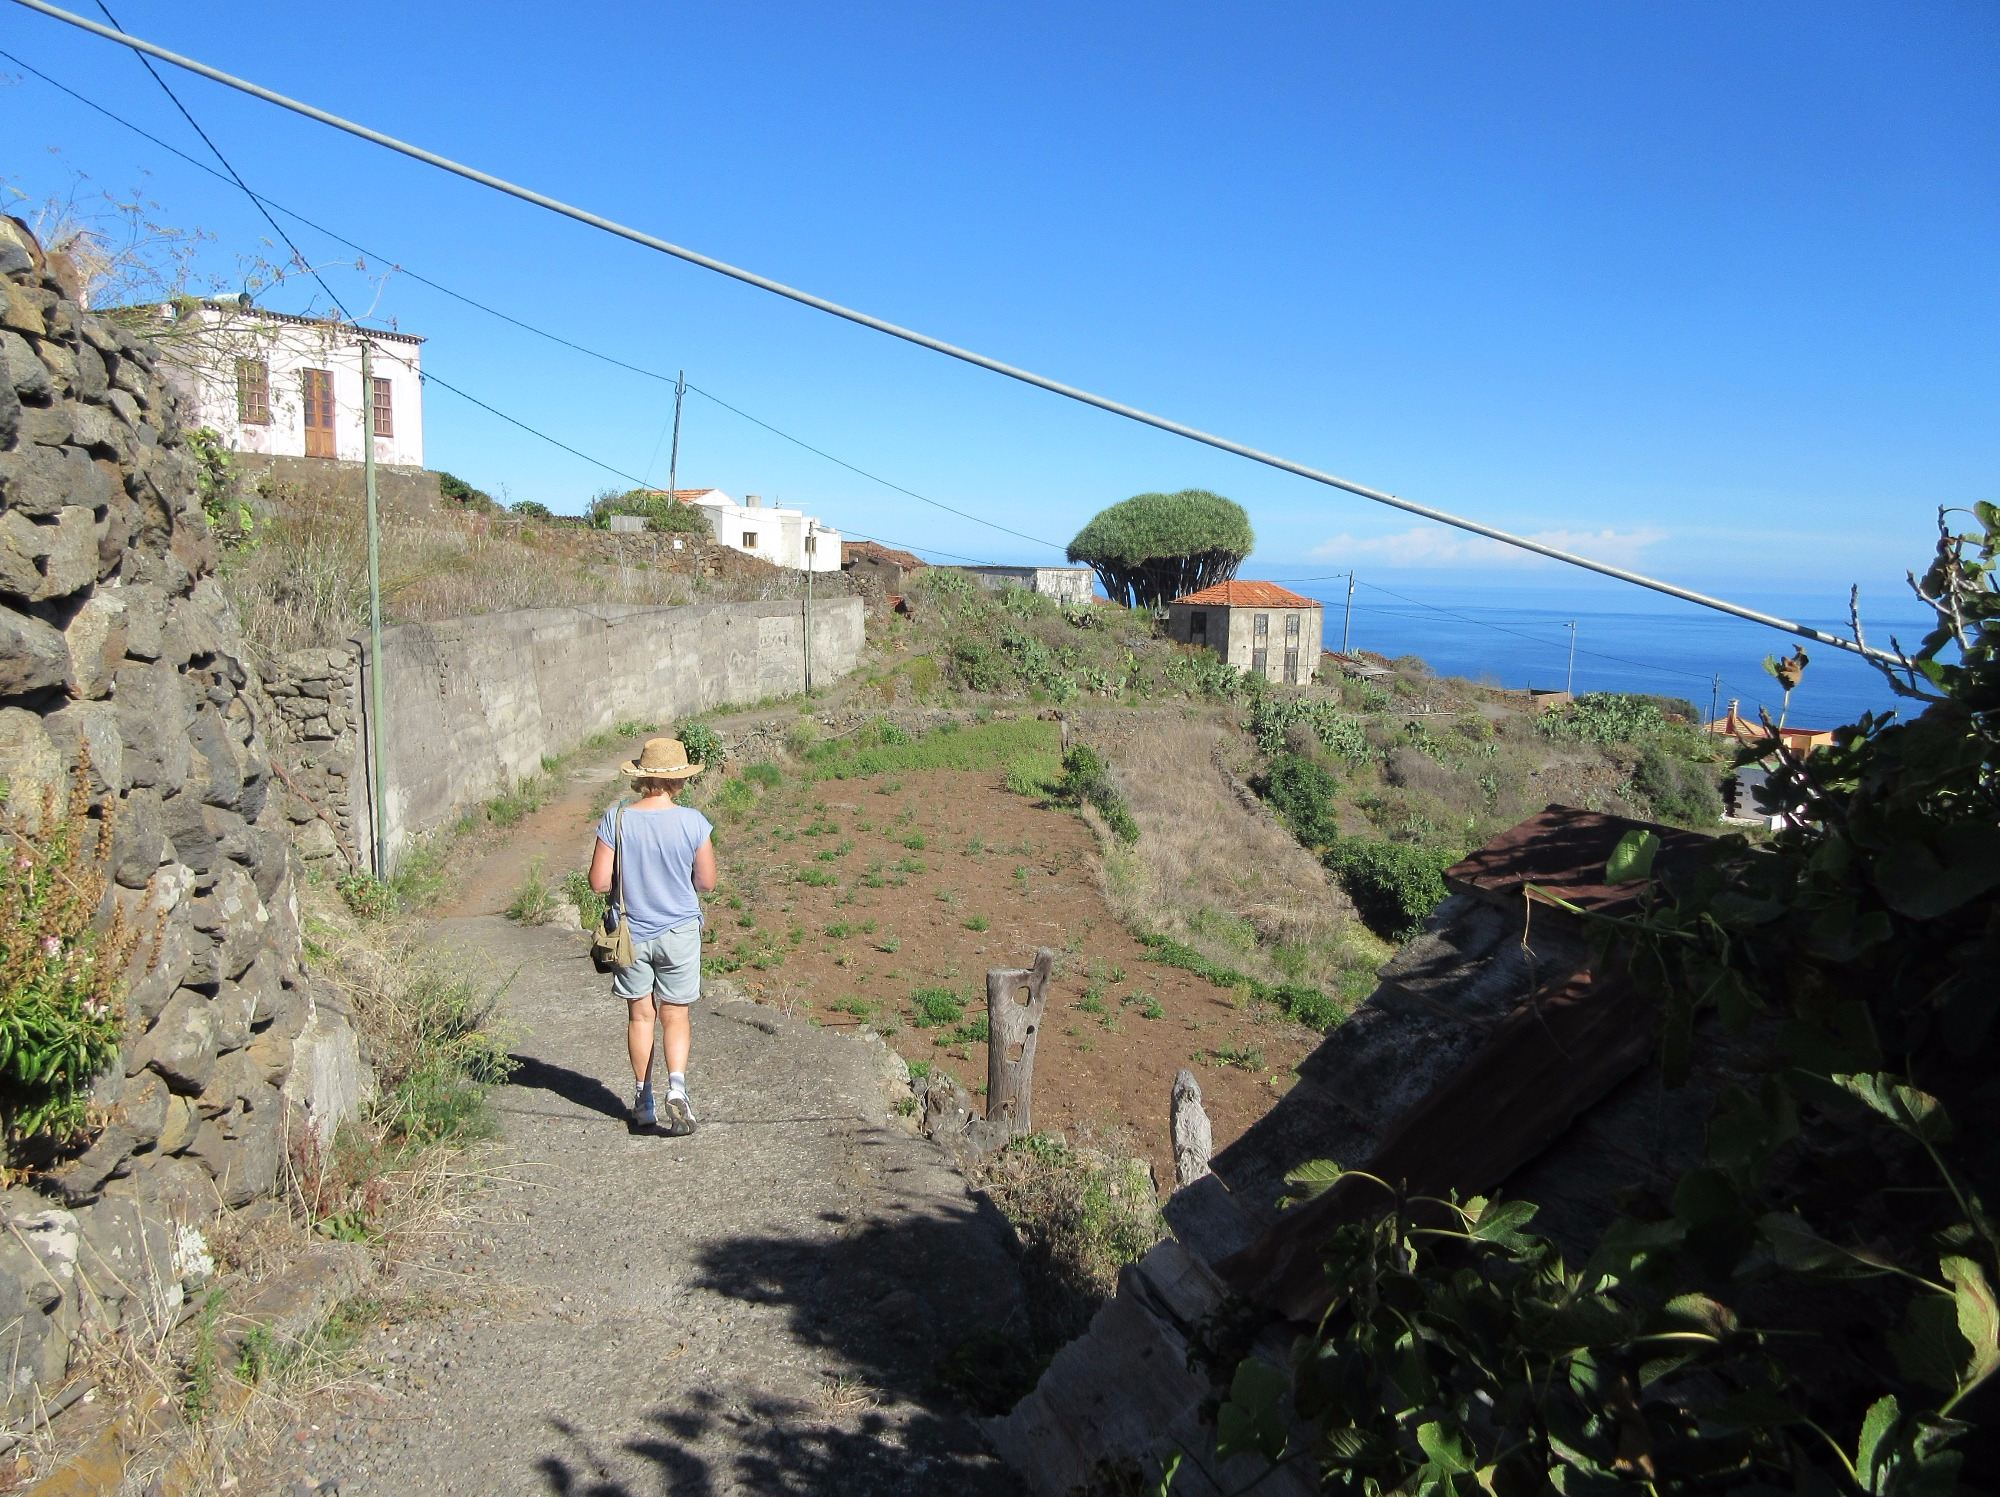 The Good Life Canary Islands La Palma Garafia el Tablado